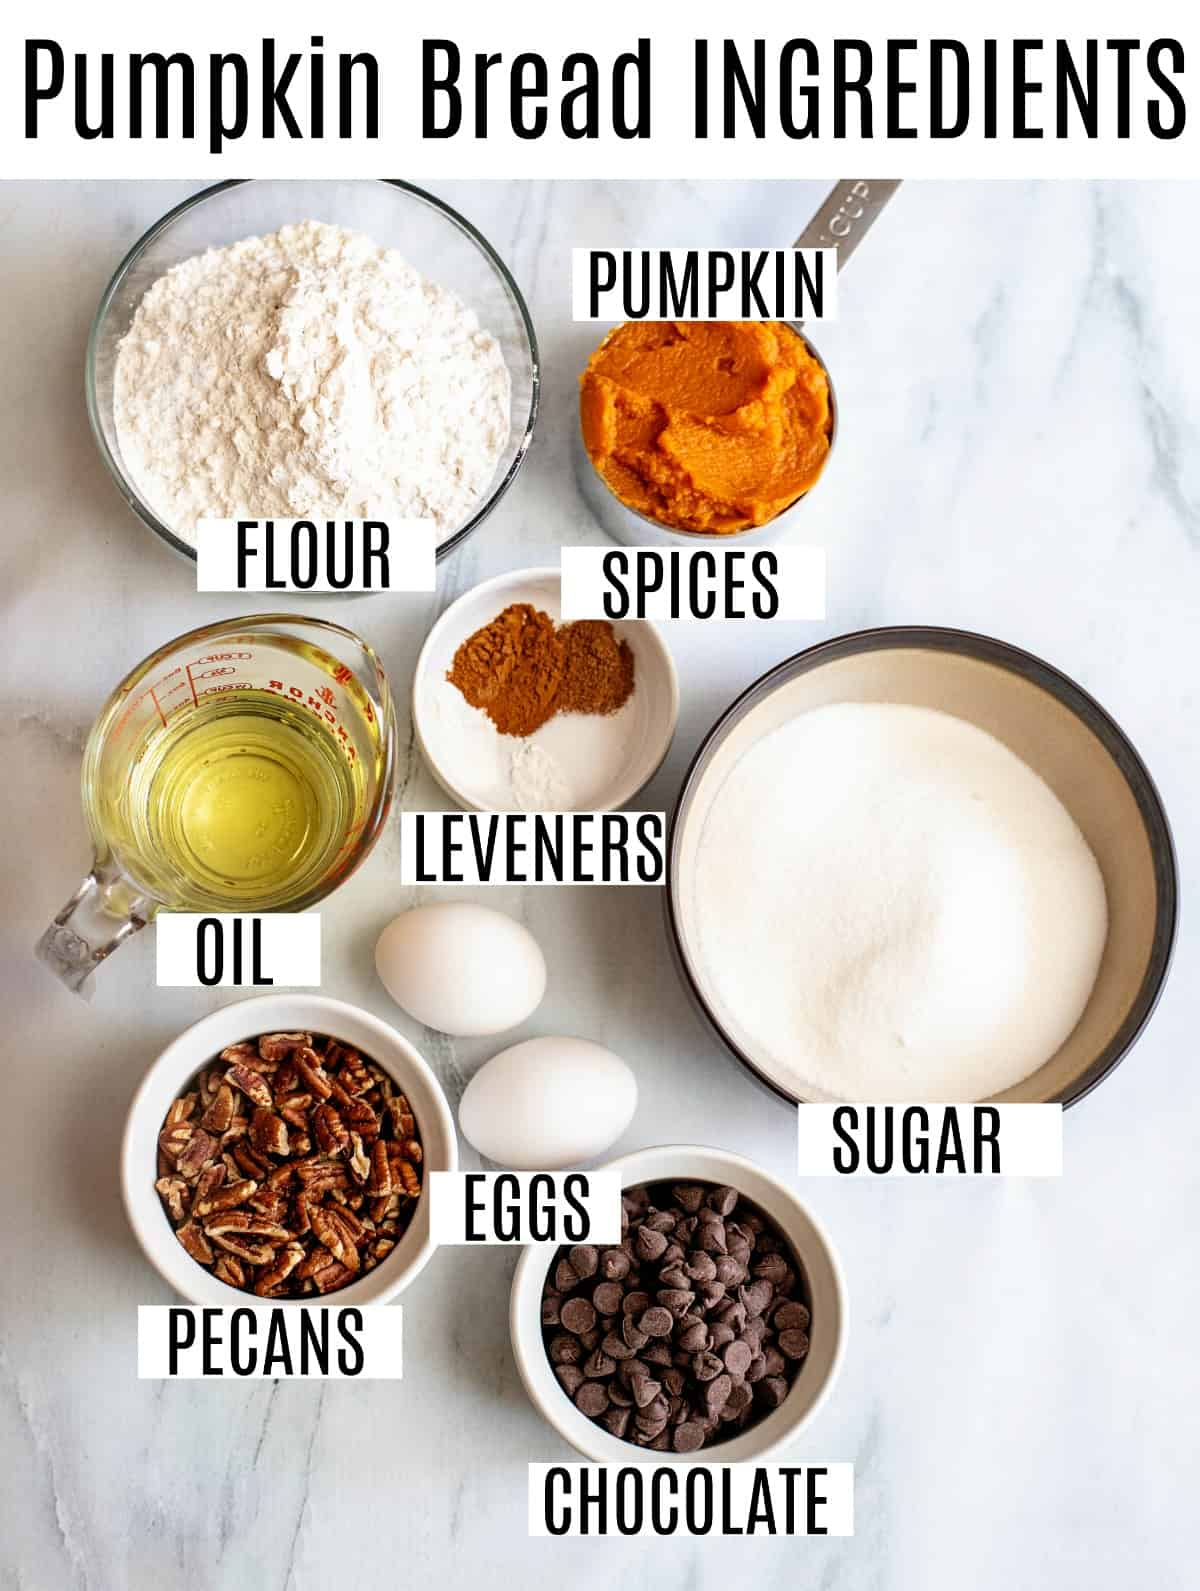 Ingredients needed for pumpkin bread including canned pumpkin, chocolate chips, and pecans.